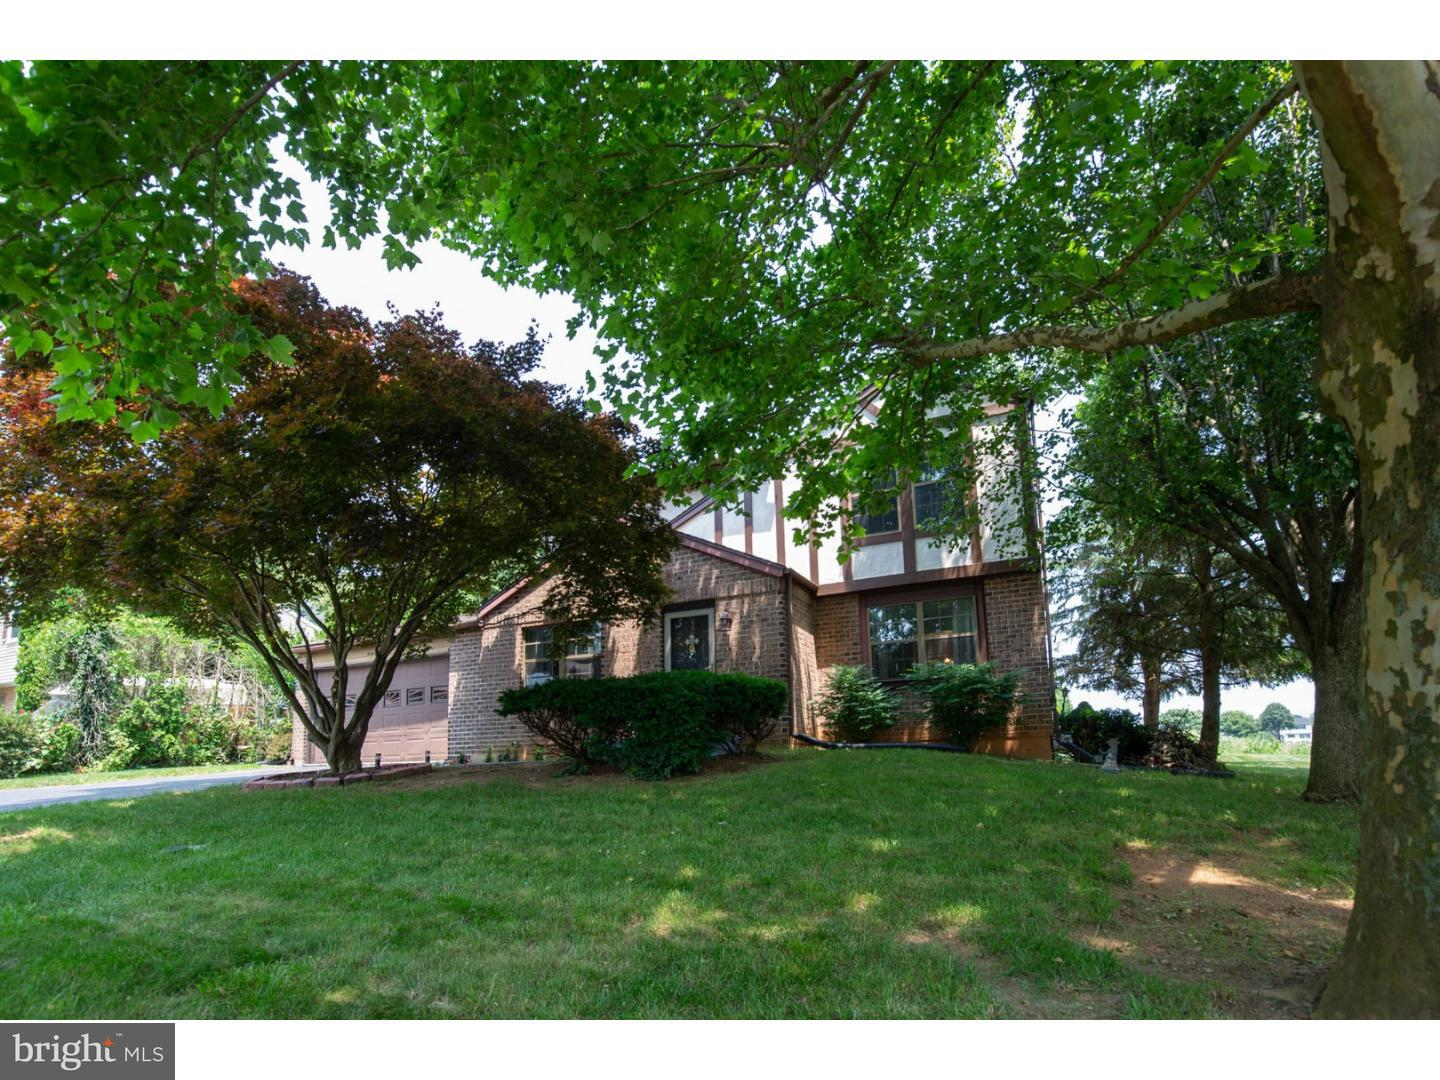 4017 DANOR DR, READING - Listed at $219,000, READING